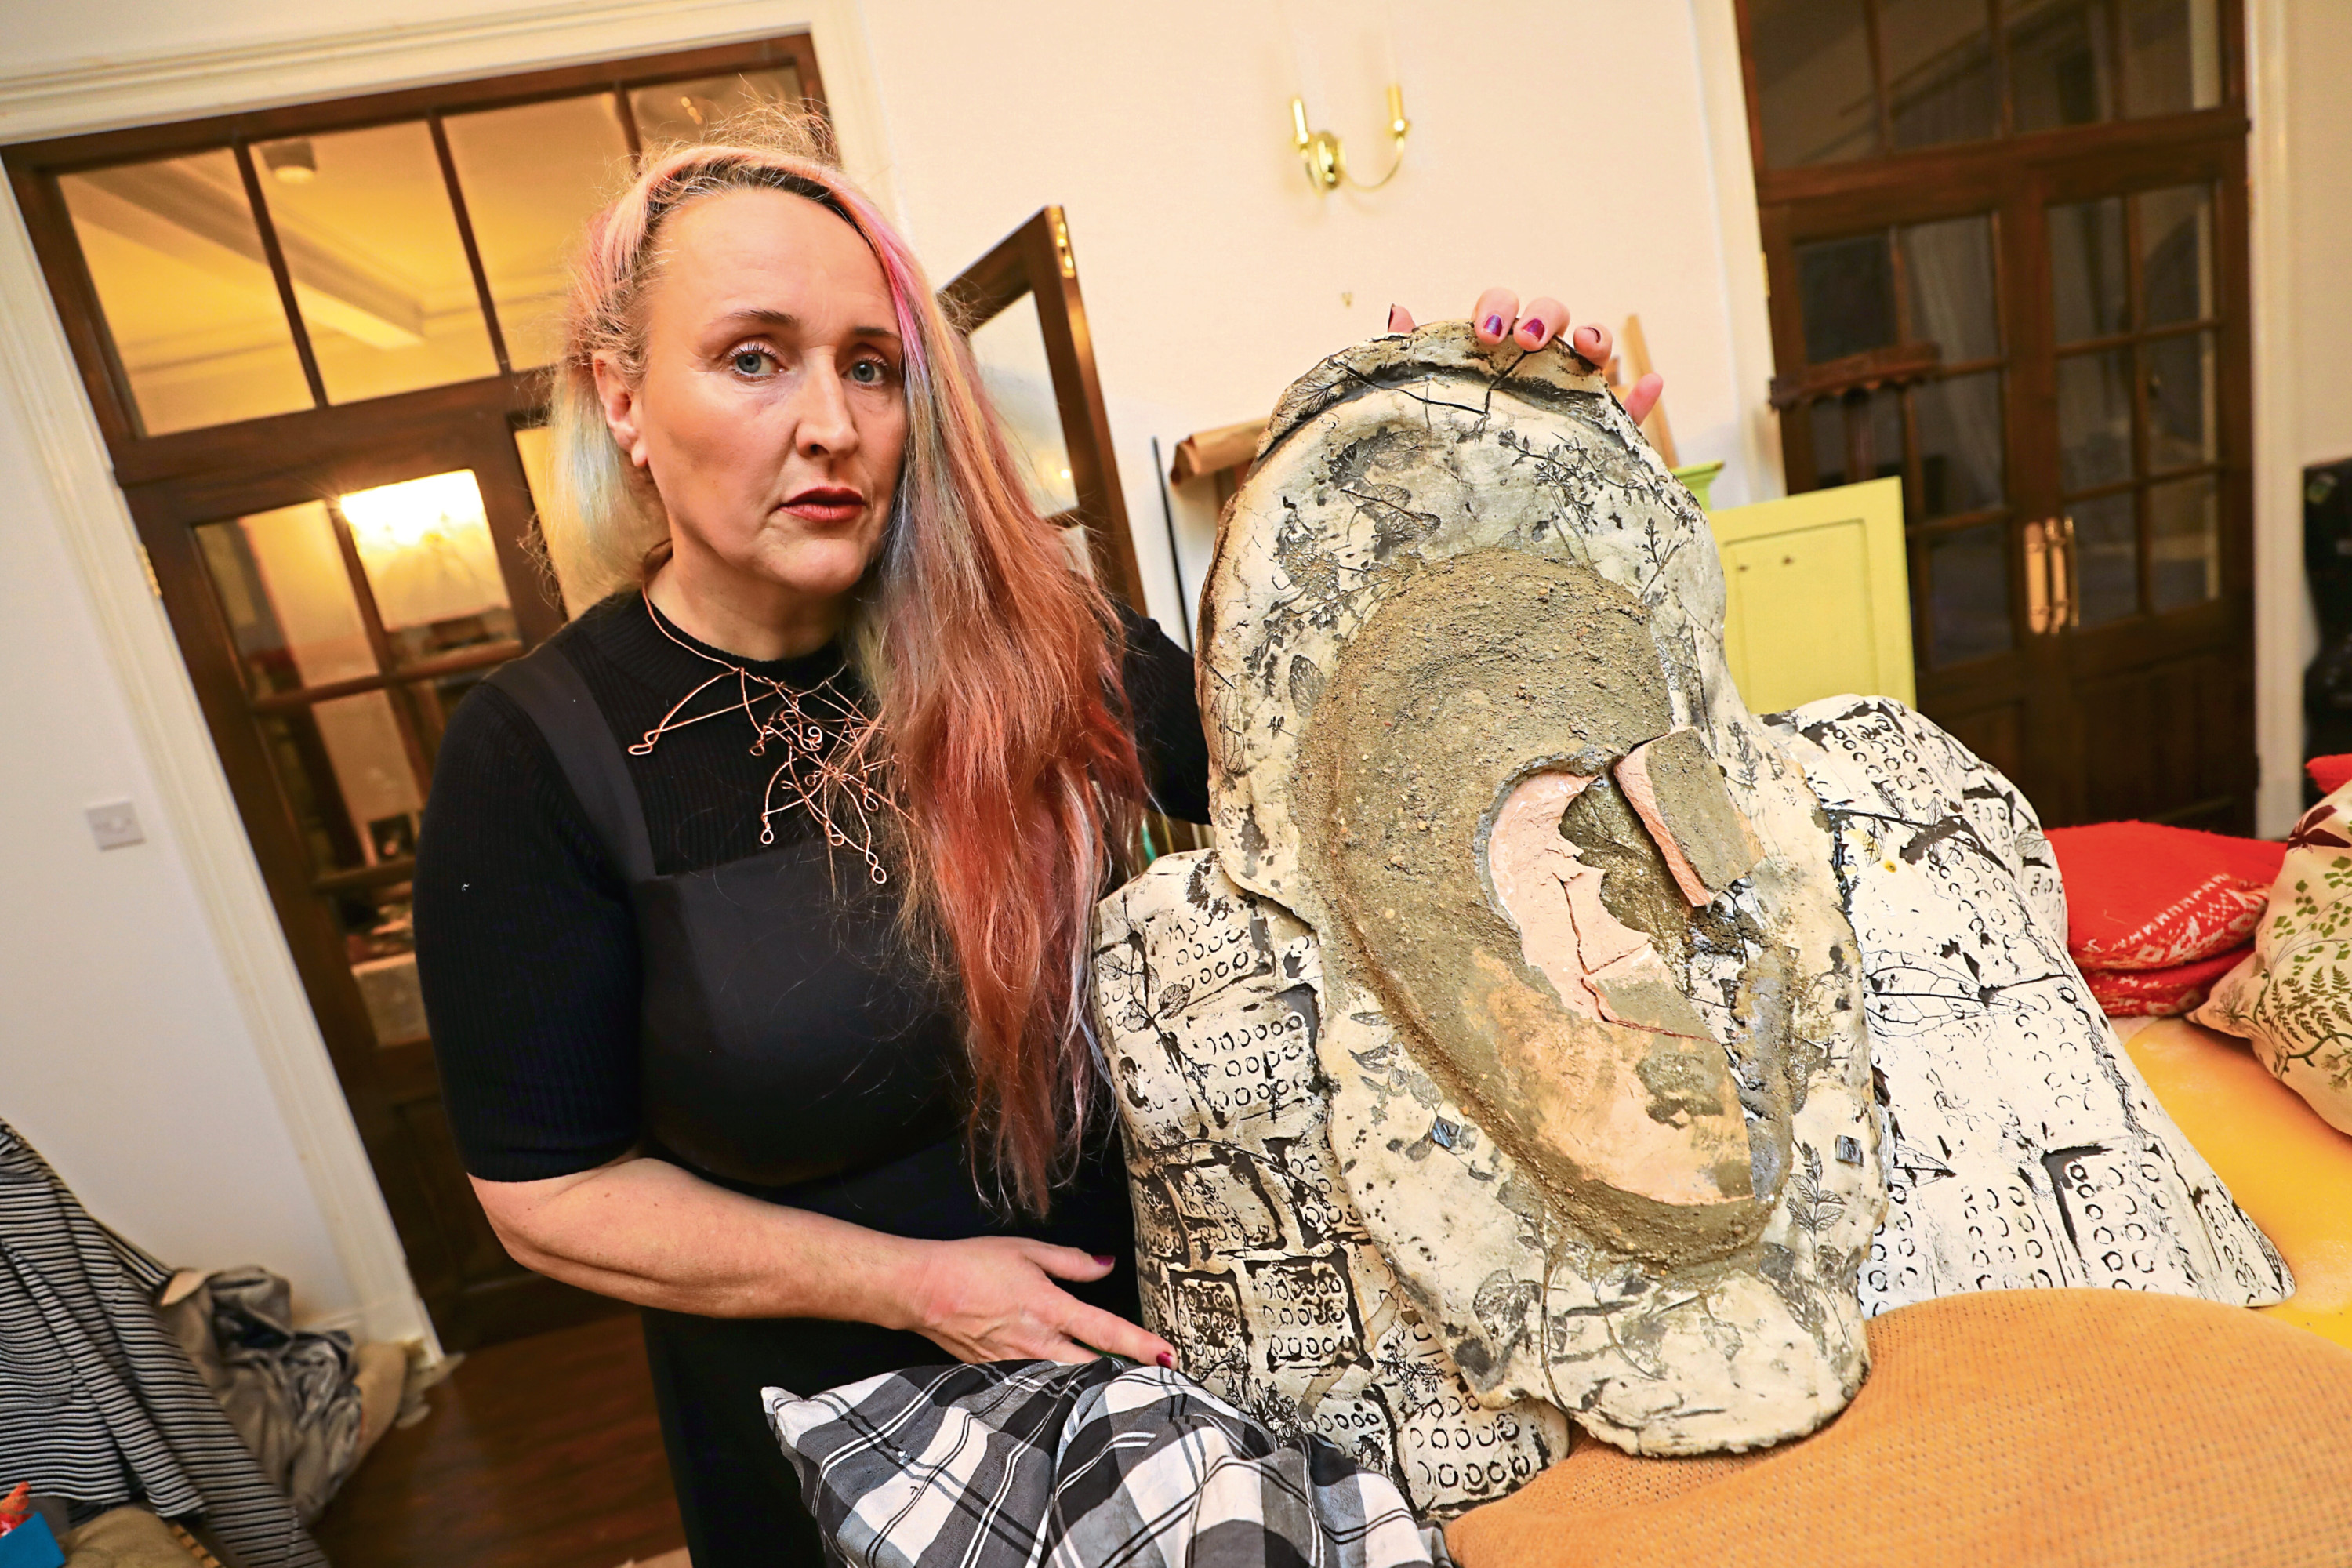 The artwork was made by sculptor Karen Elliot who has now launched a campaign to raise £7,000 to fund a replacement